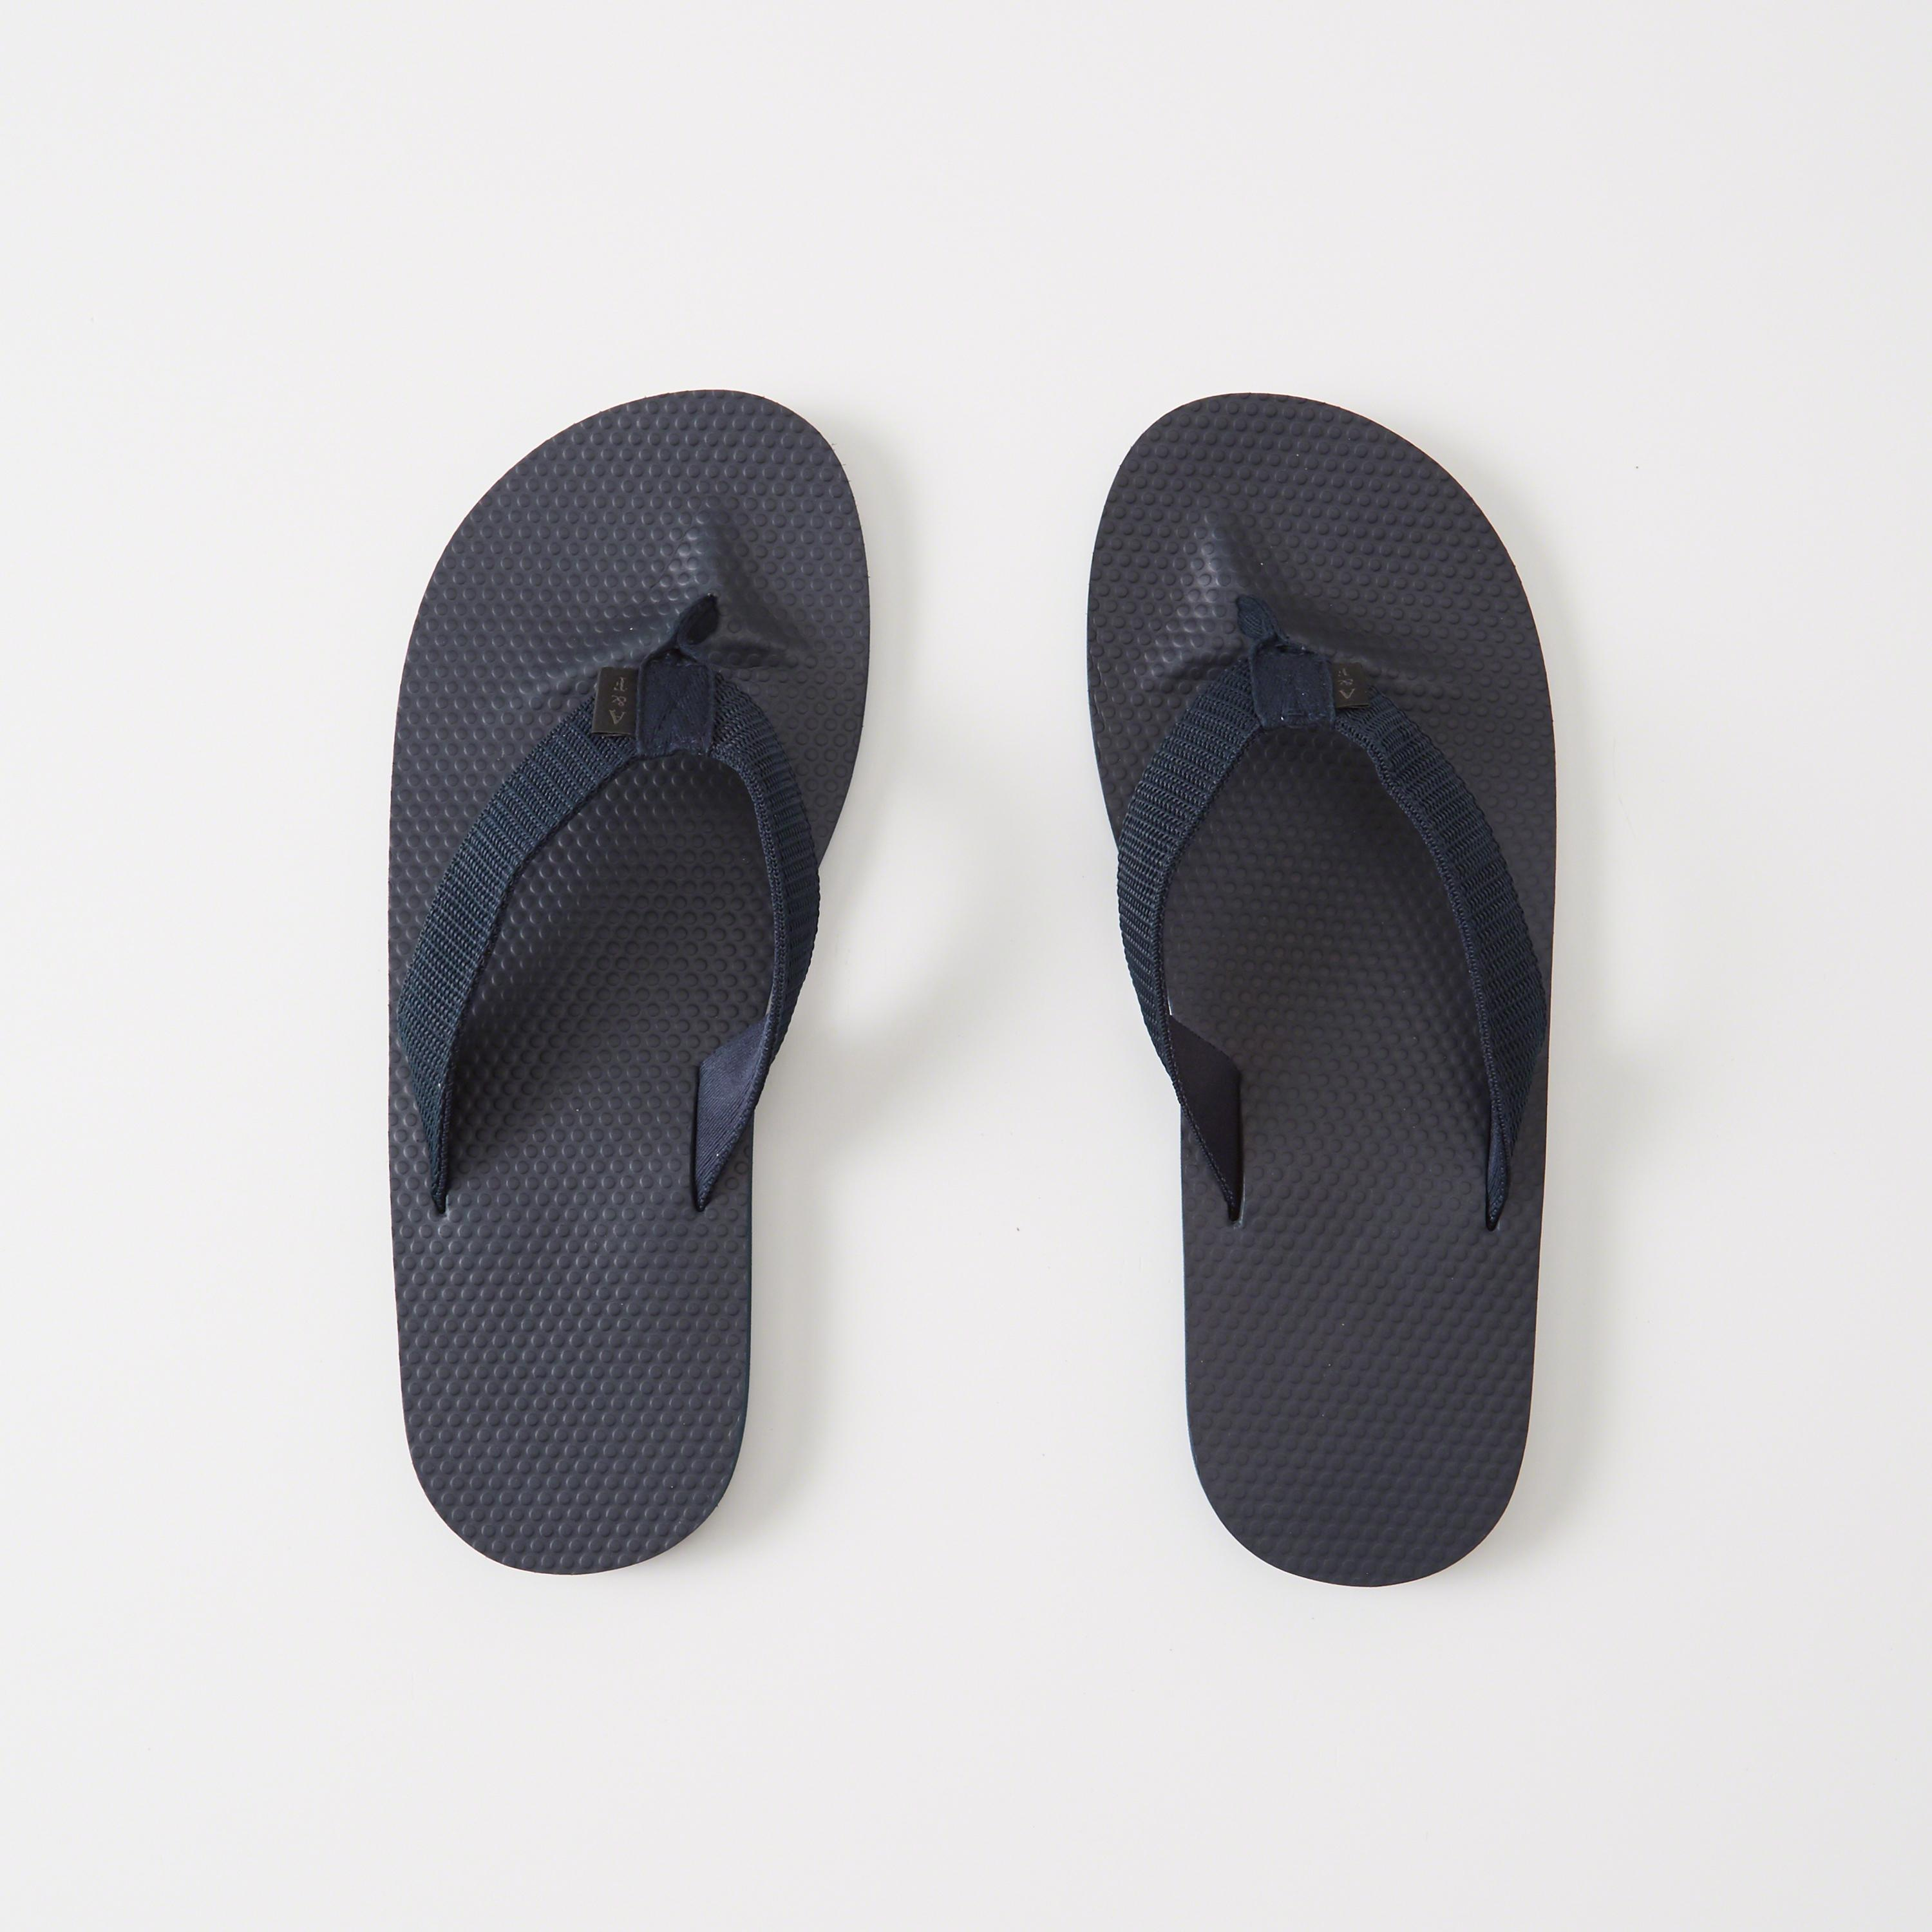 7c6b60d2a73a Abercrombie   Fitch Mixed Media Rubber Flip Flops in Blue for Men - Lyst